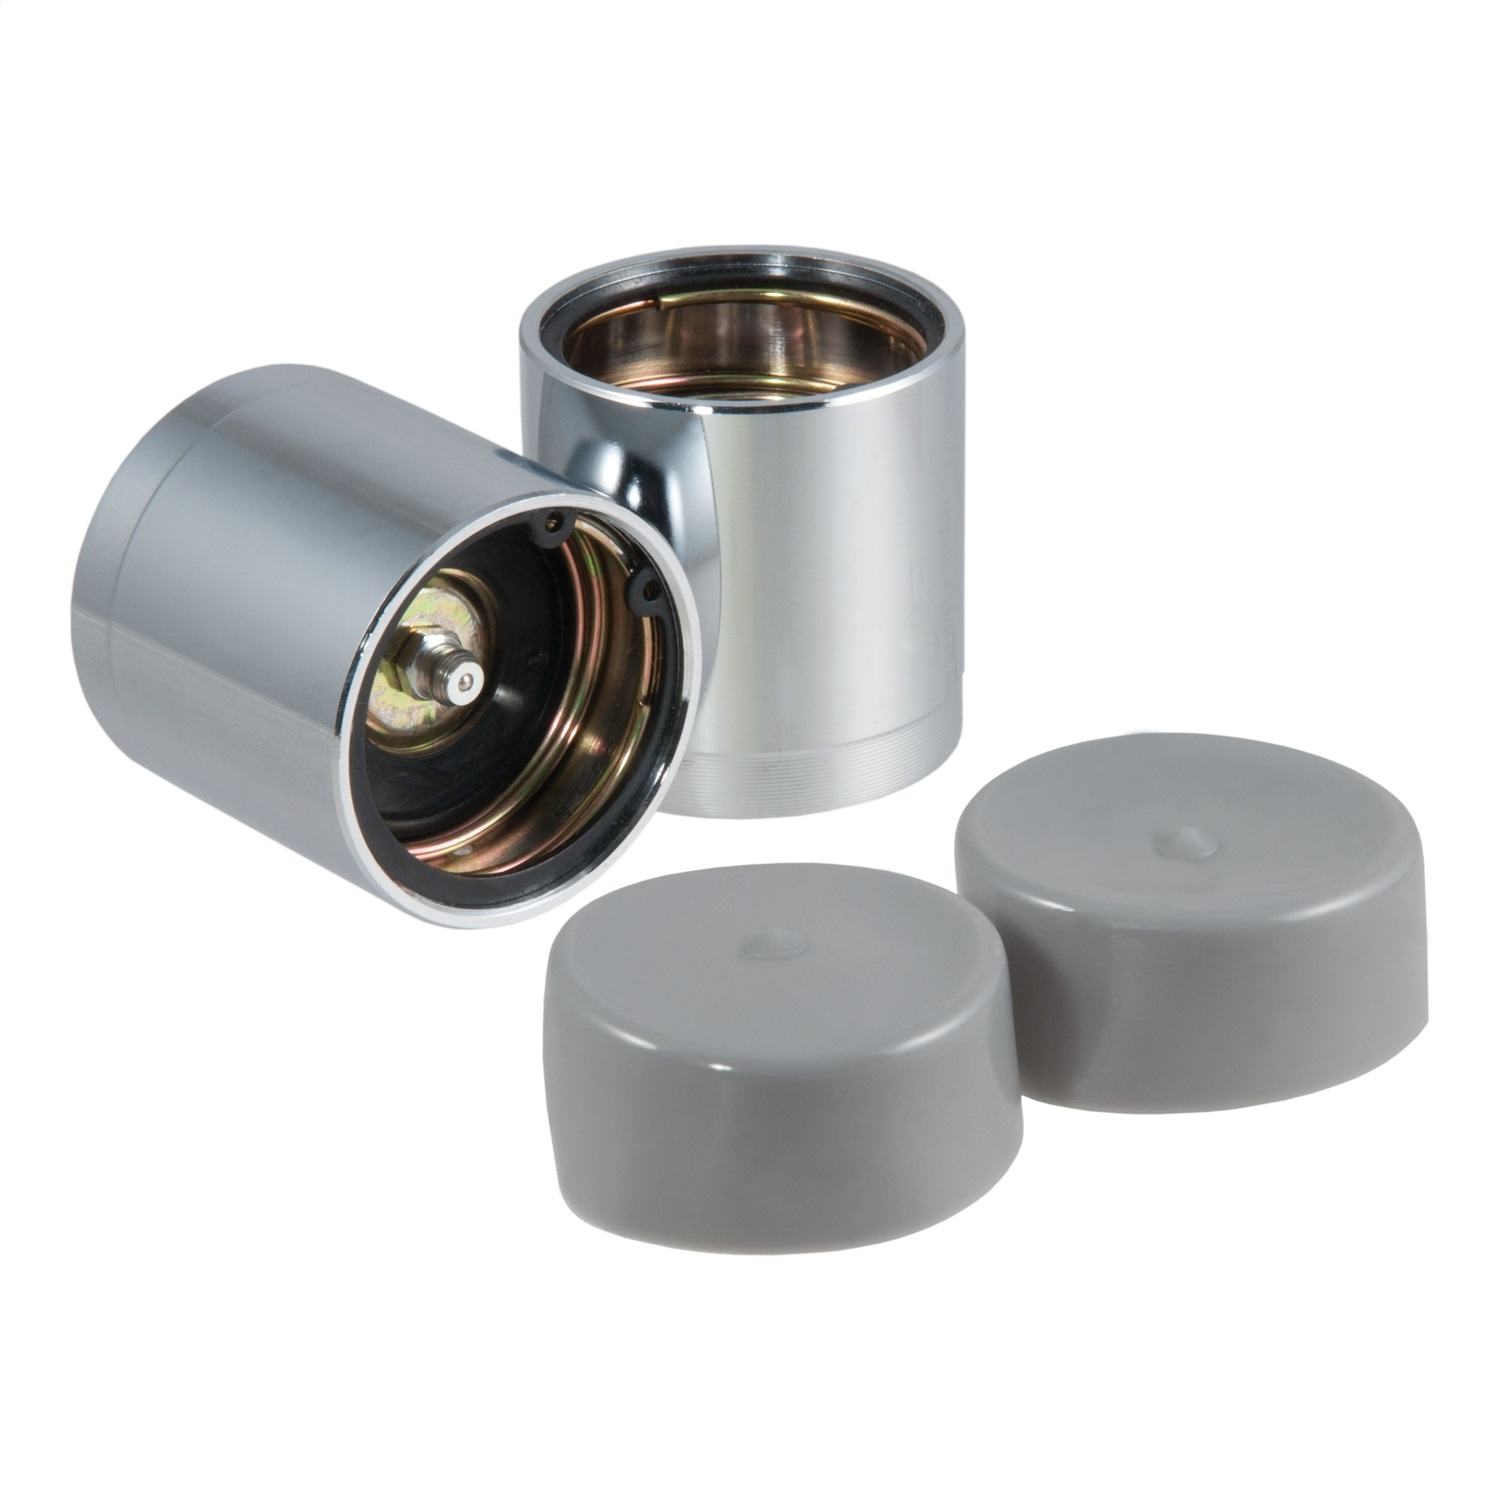 curt-manufacturing-22198-bearing-protectors-fits